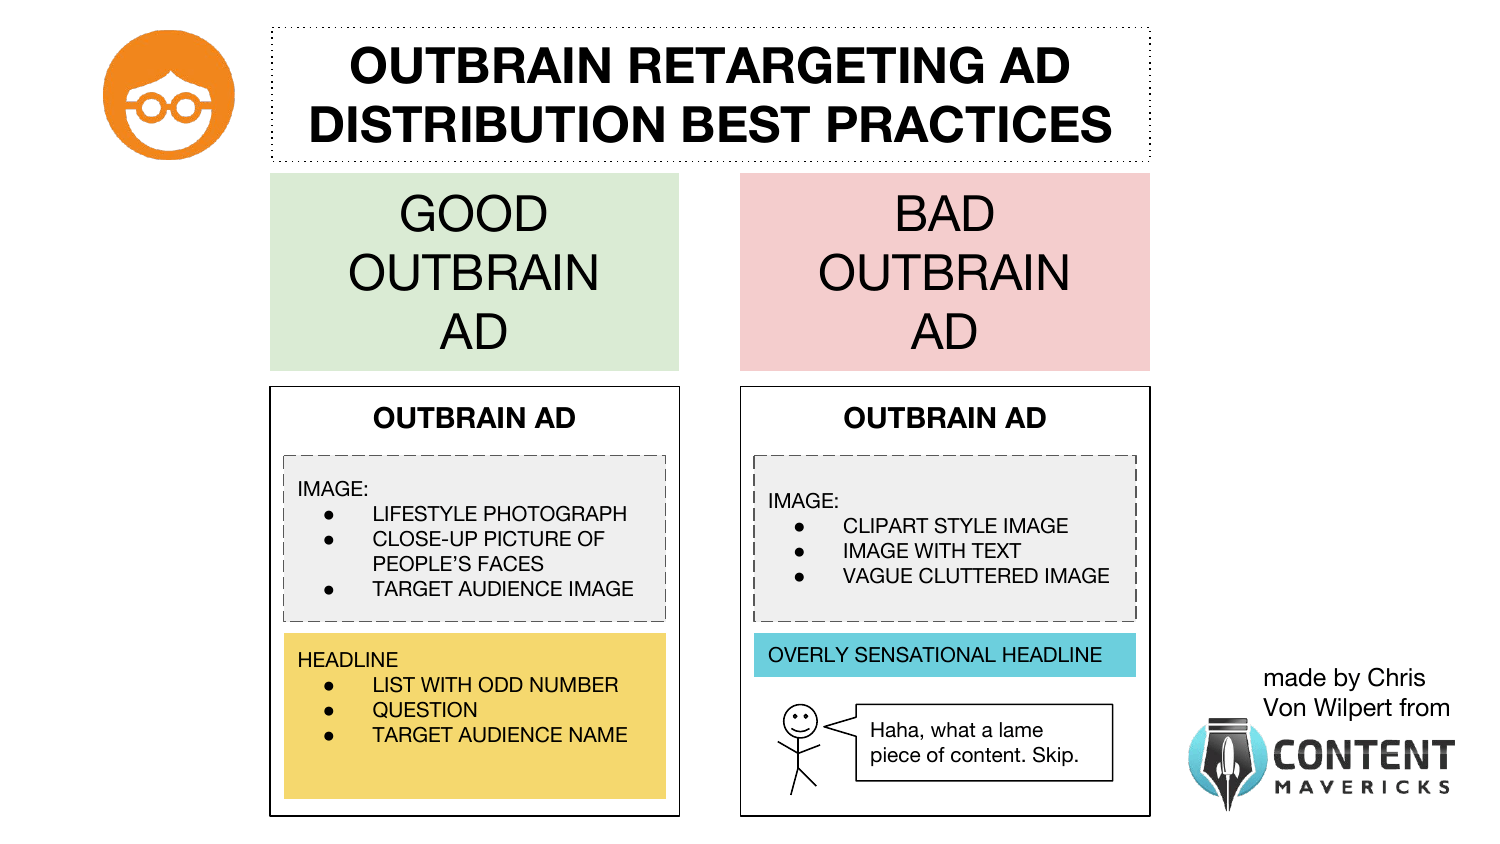 outbrain retargeting ad content distribution best practices image